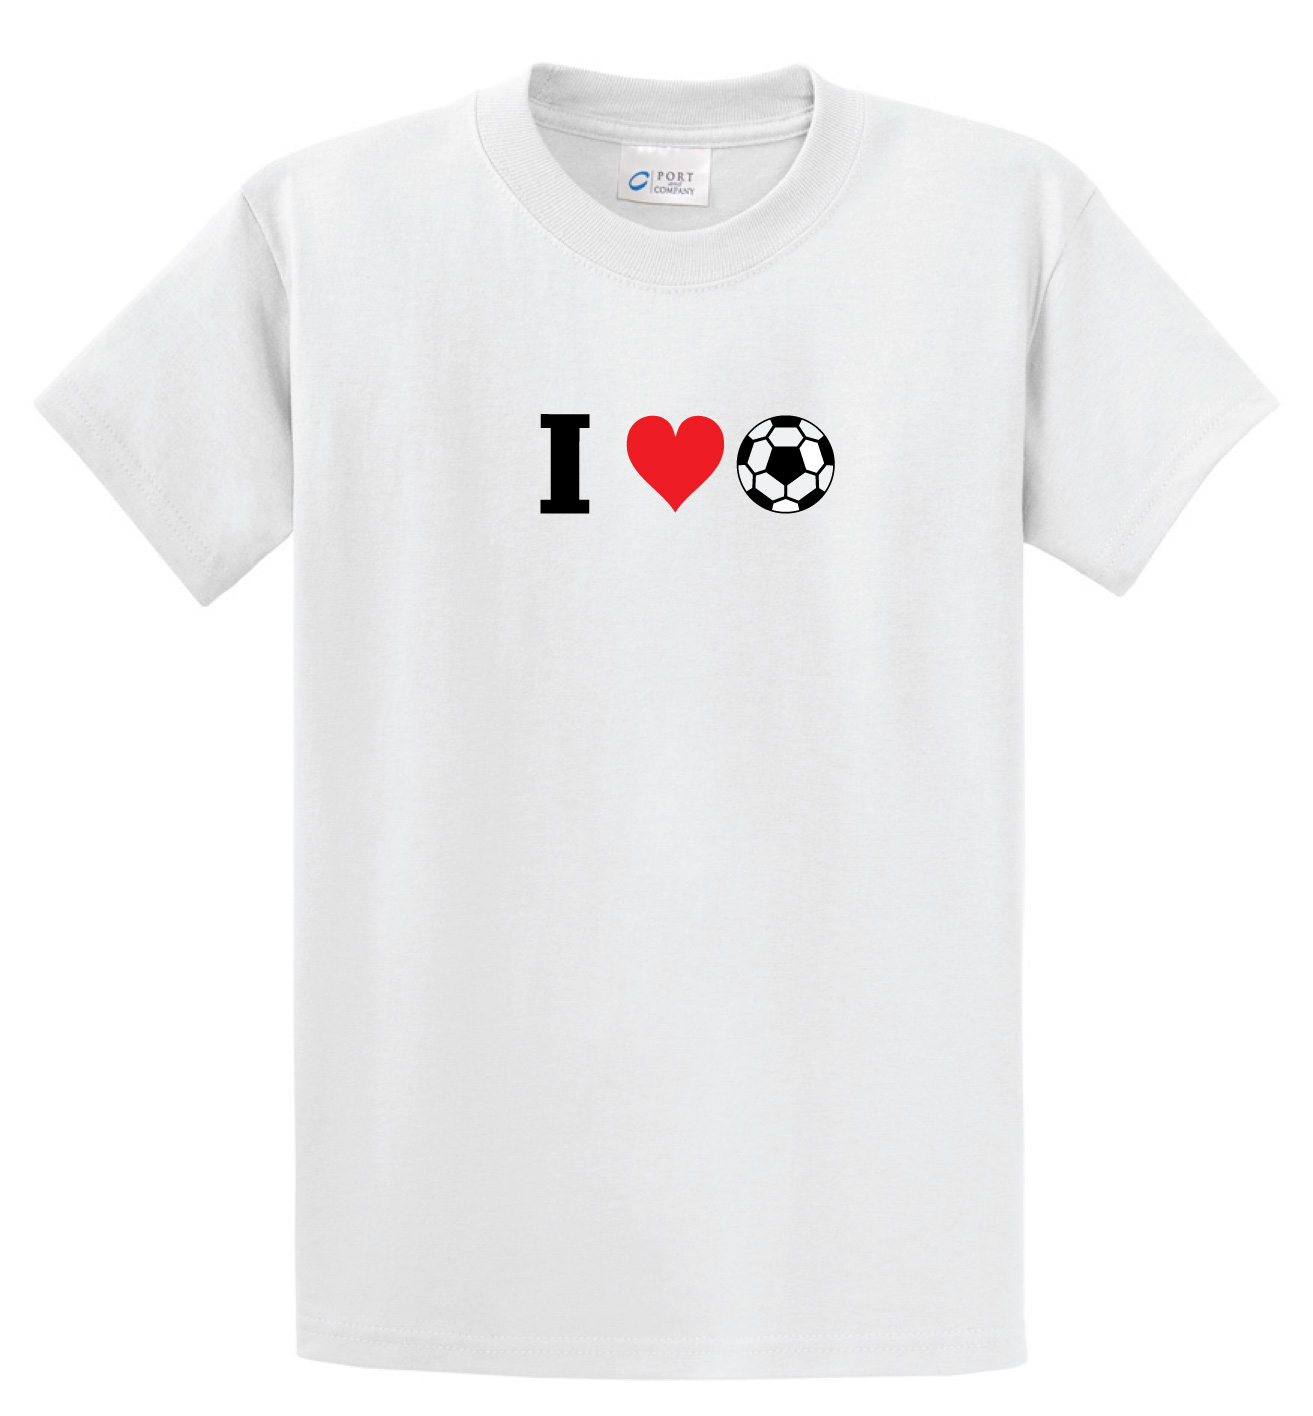 I Love Soccer tee in white